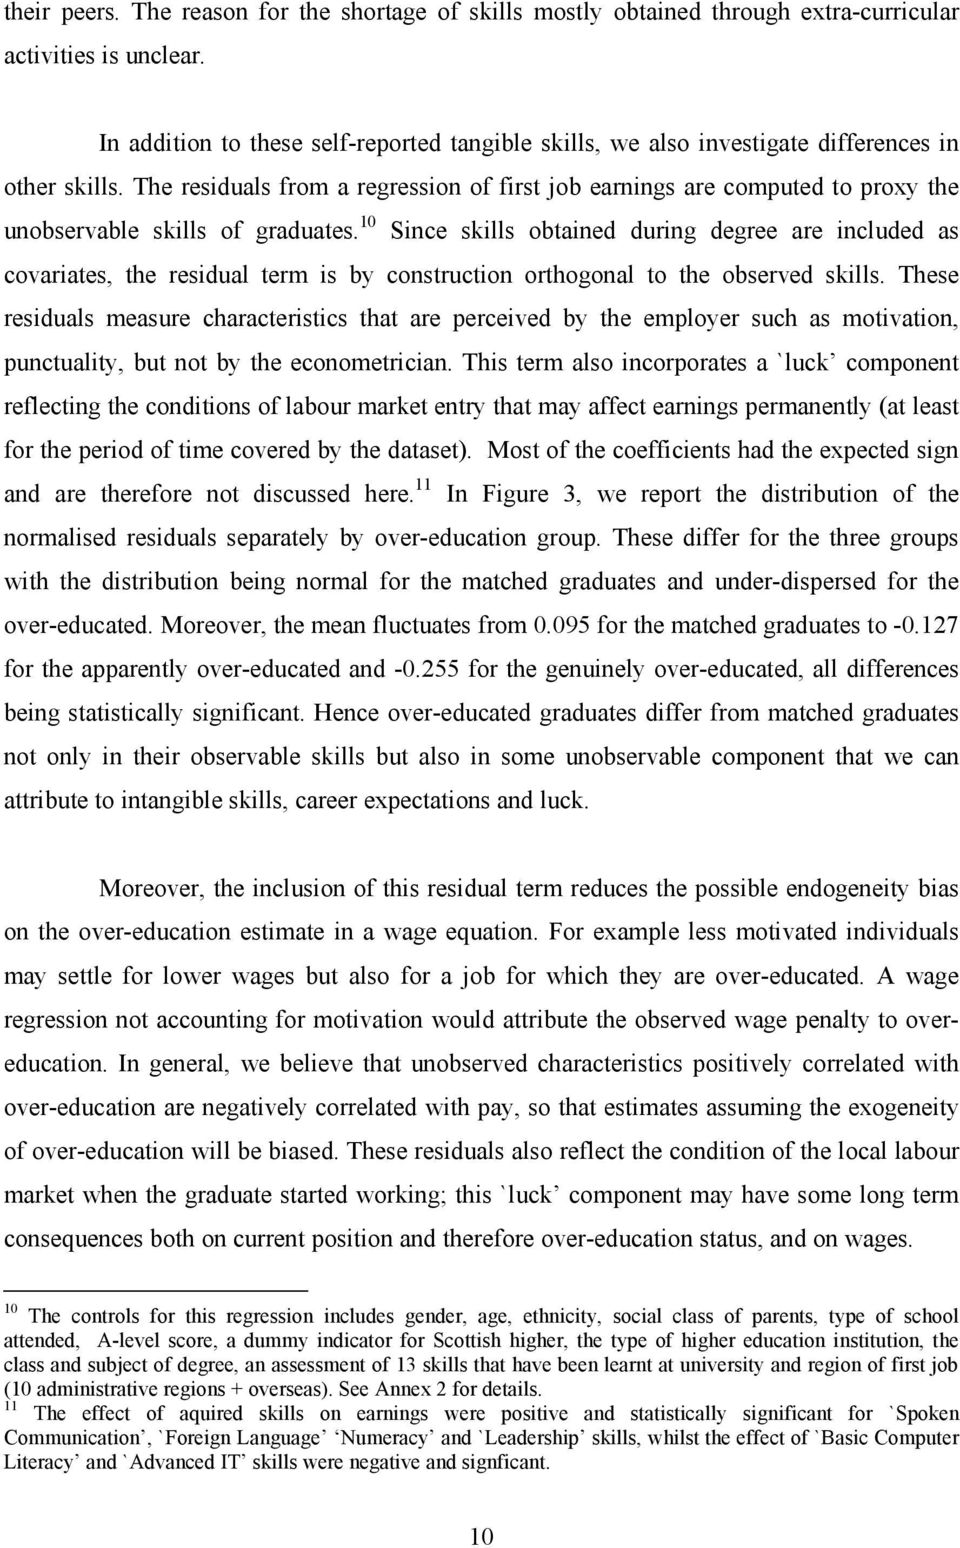 The residuals from a regression of first job earnings are computed to proxy the unobservable skills of graduates.